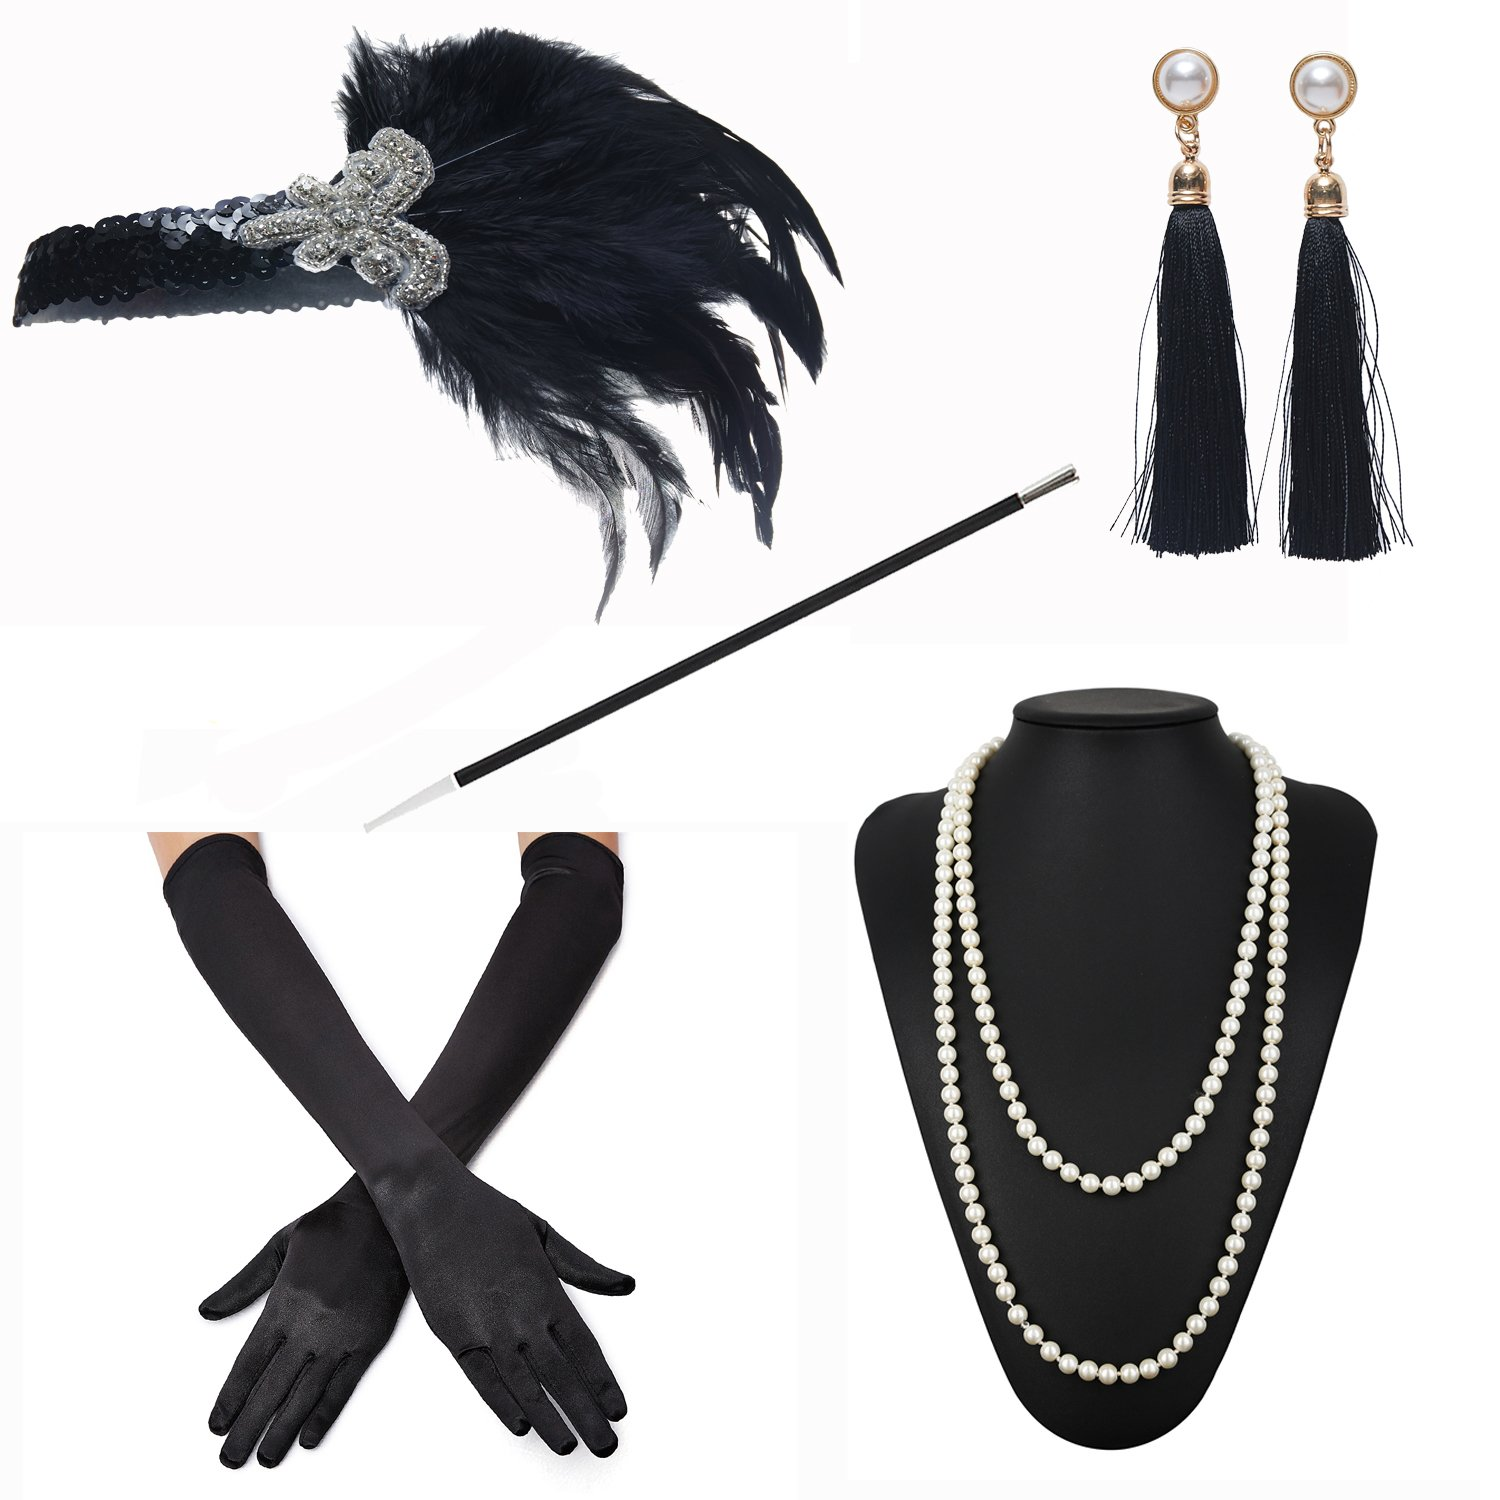 ZeroShop 1920s Accessories Headband Earrings Necklace Gloves Cigarette Holder (Medium, M10)